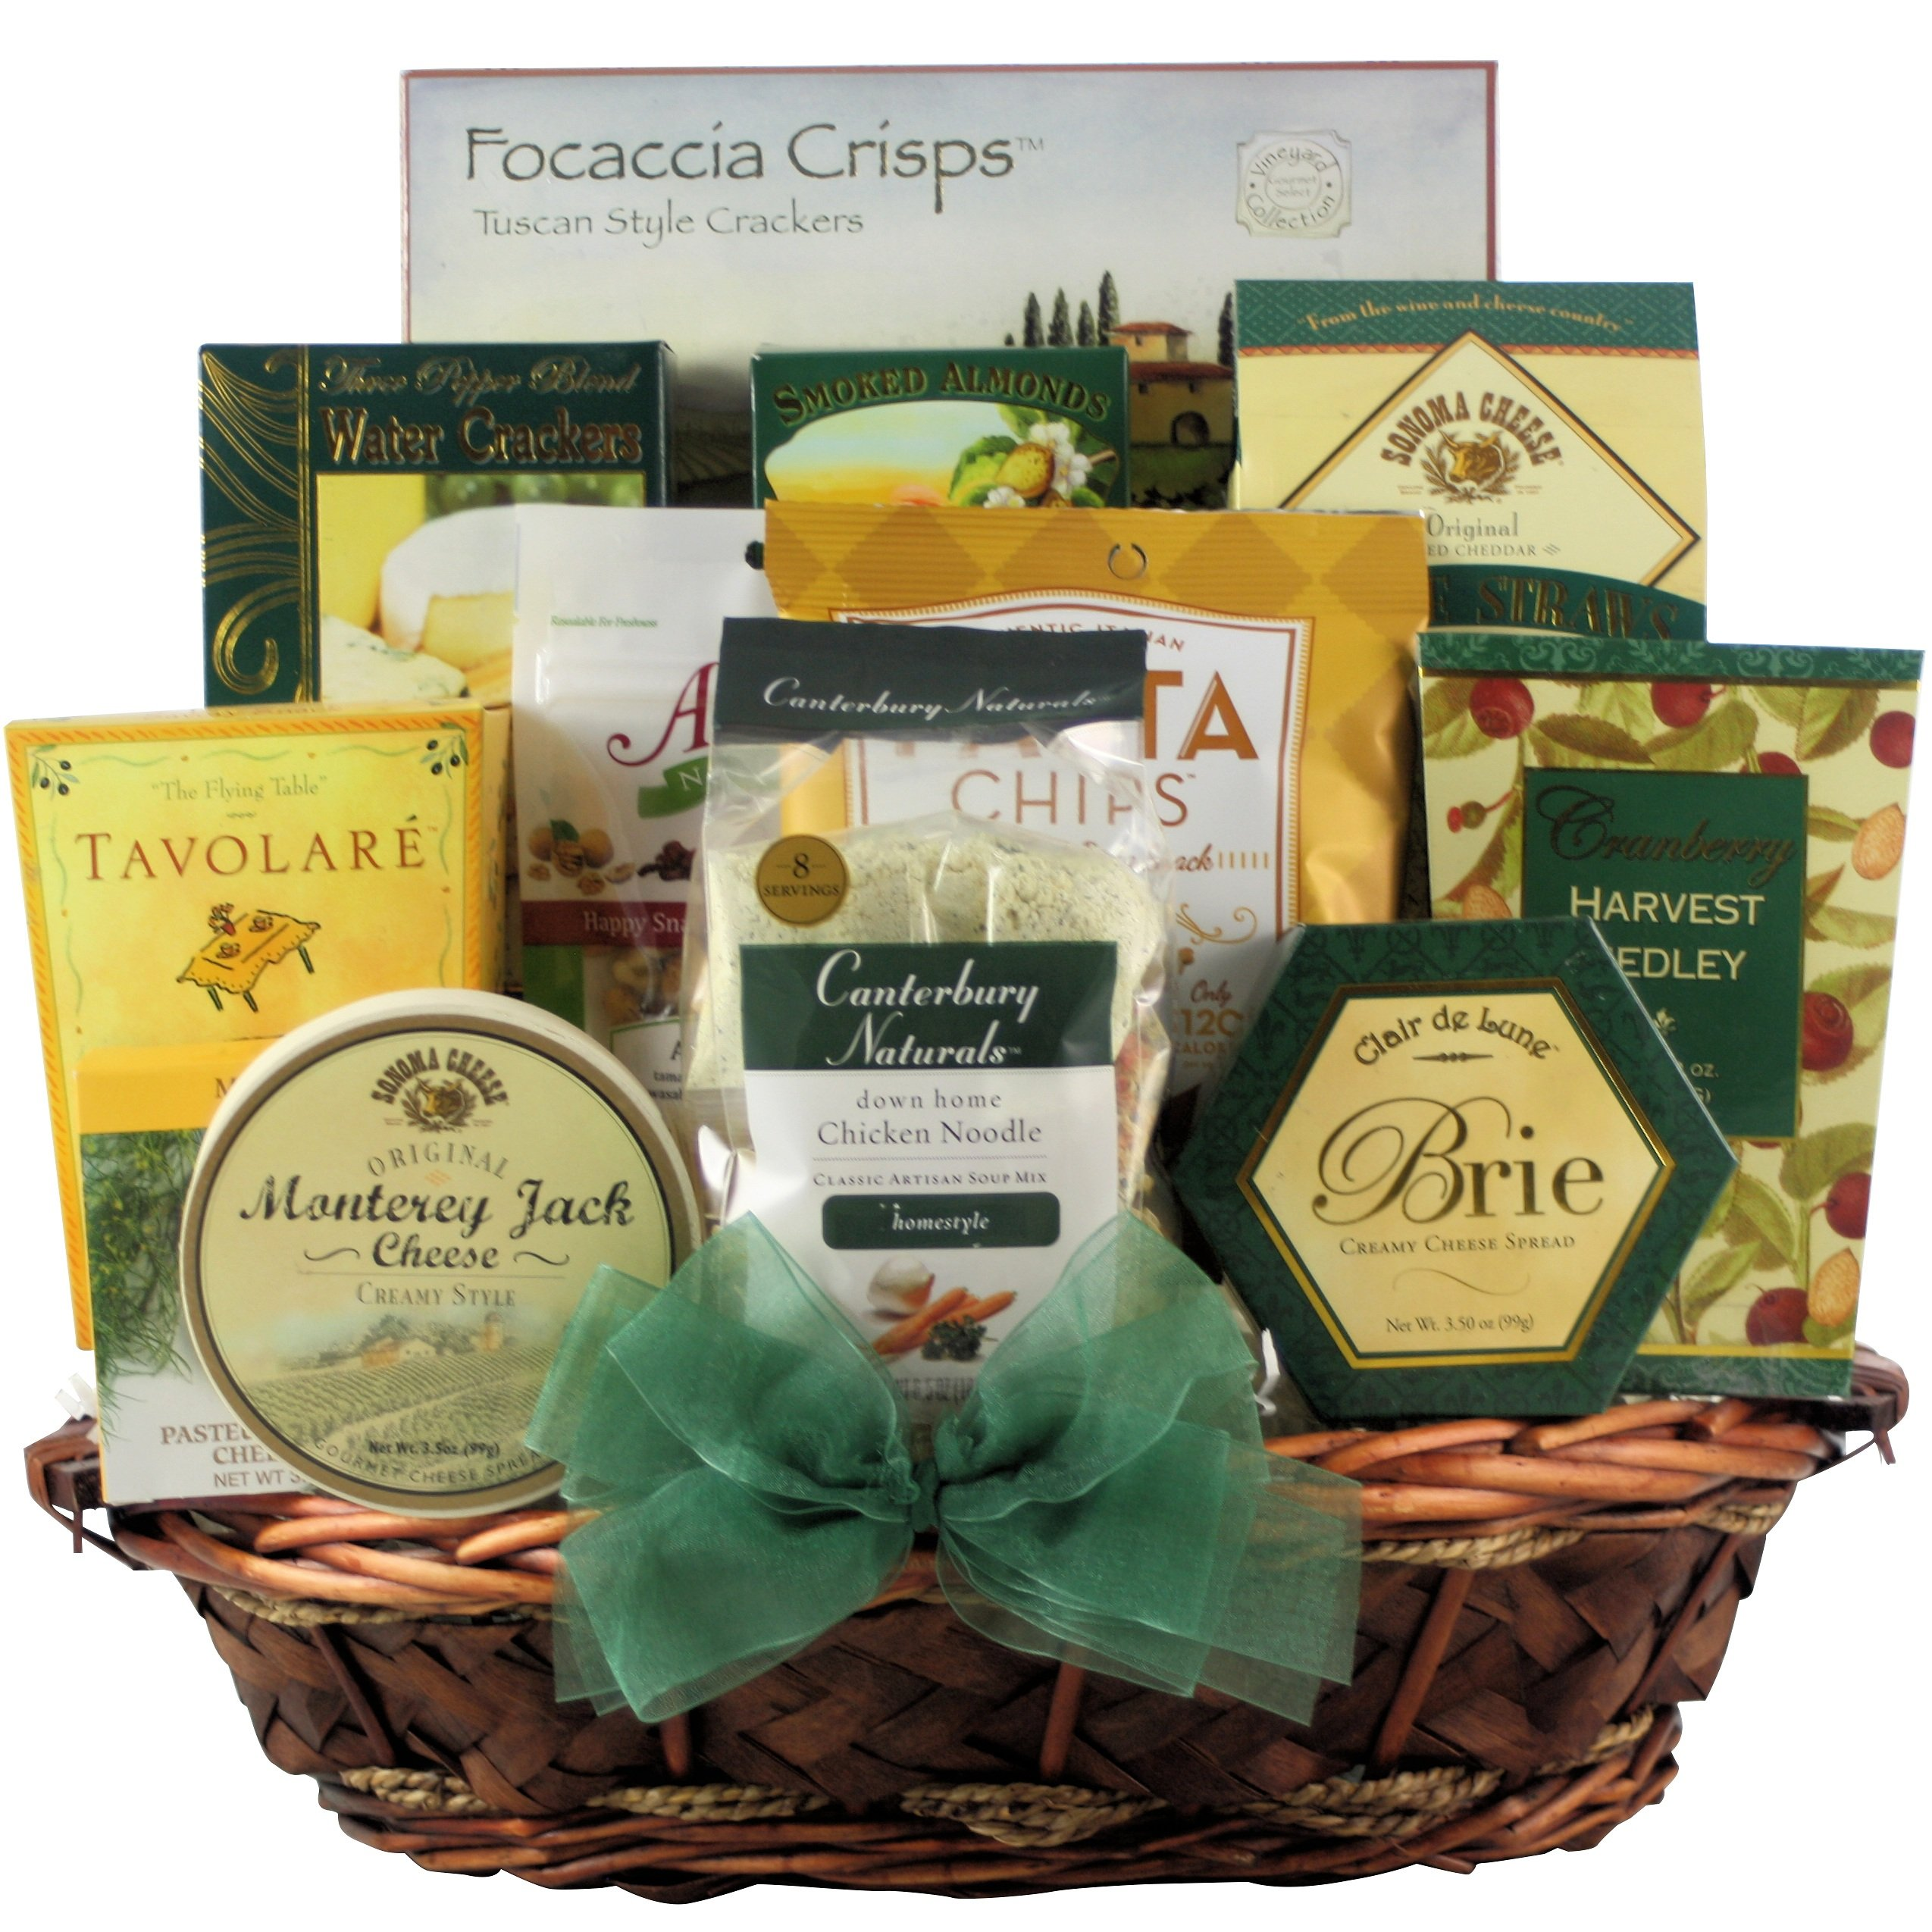 GreatArrivals Wishing You A Speedy Recovery! Get Well Gift Basket